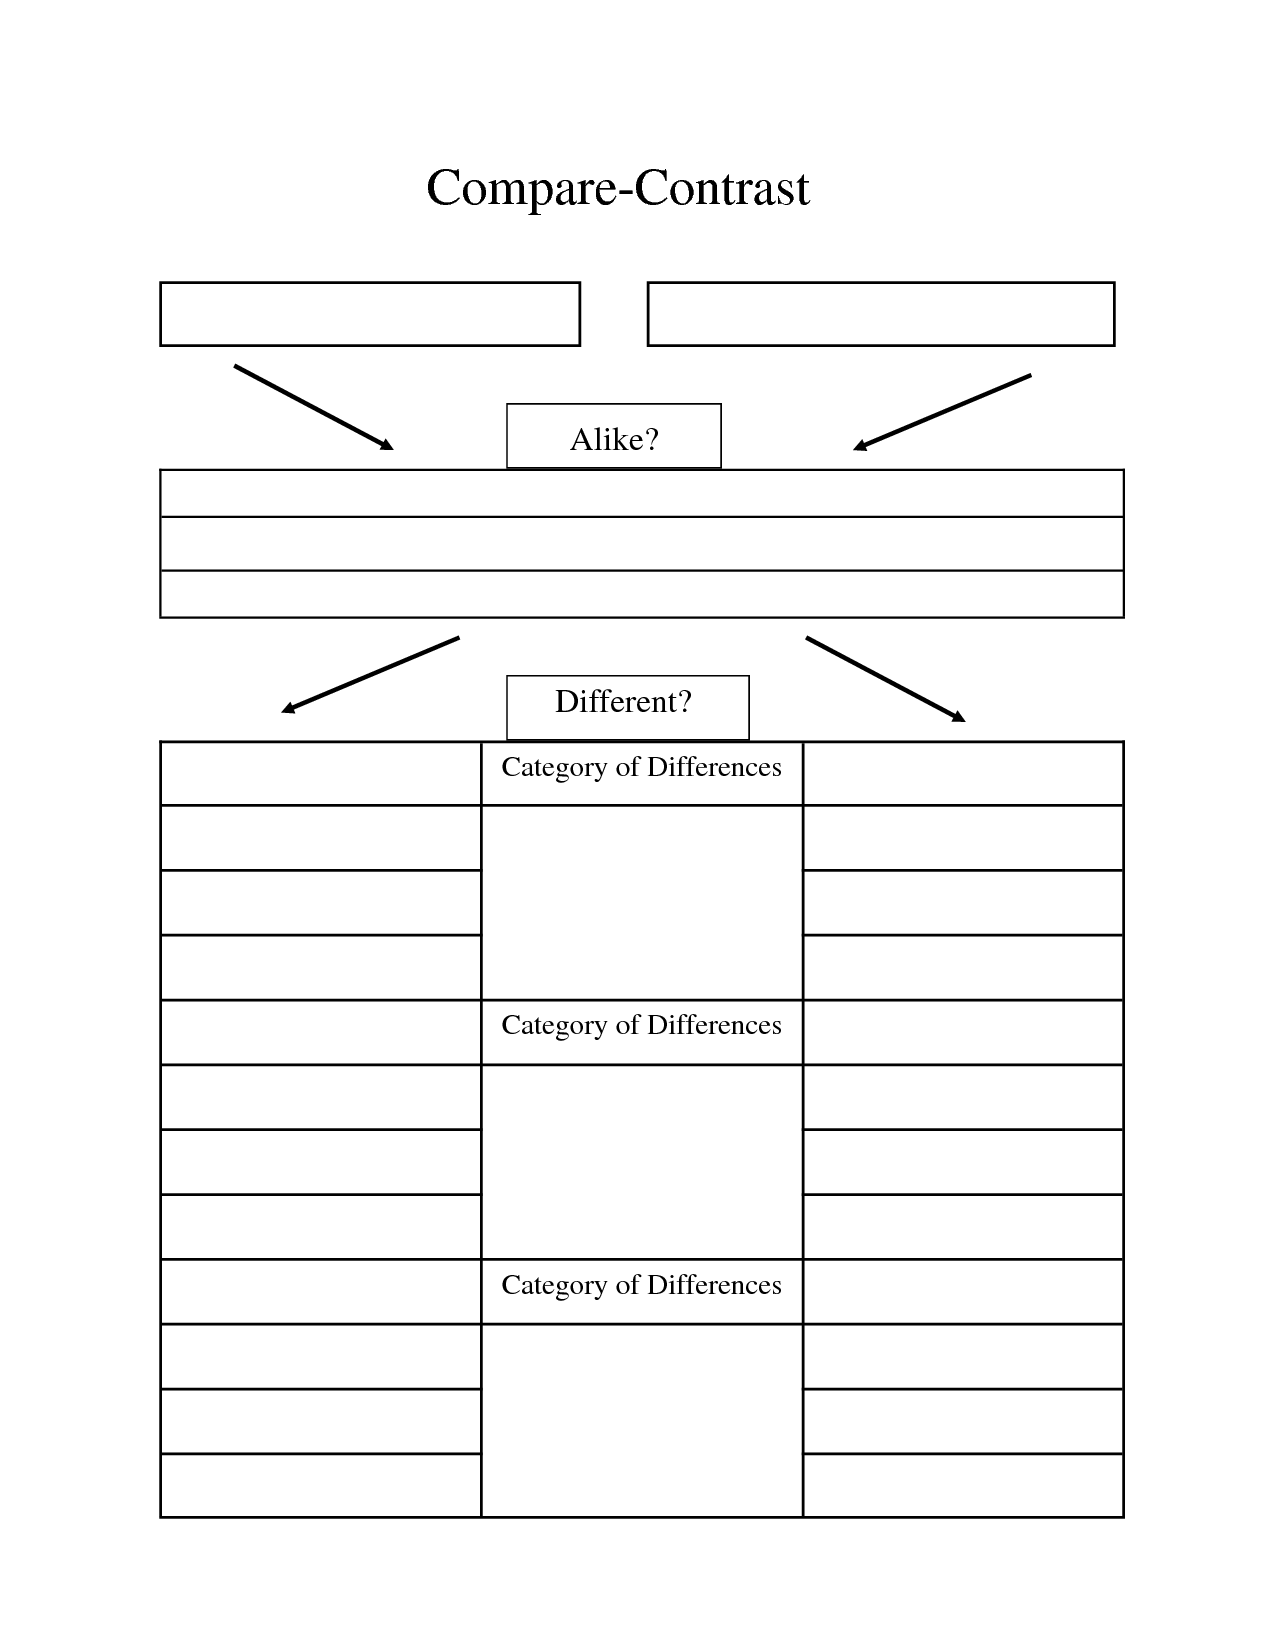 Compare contrast essay graphic organizer compare for Compare and contrast graphic organizer template